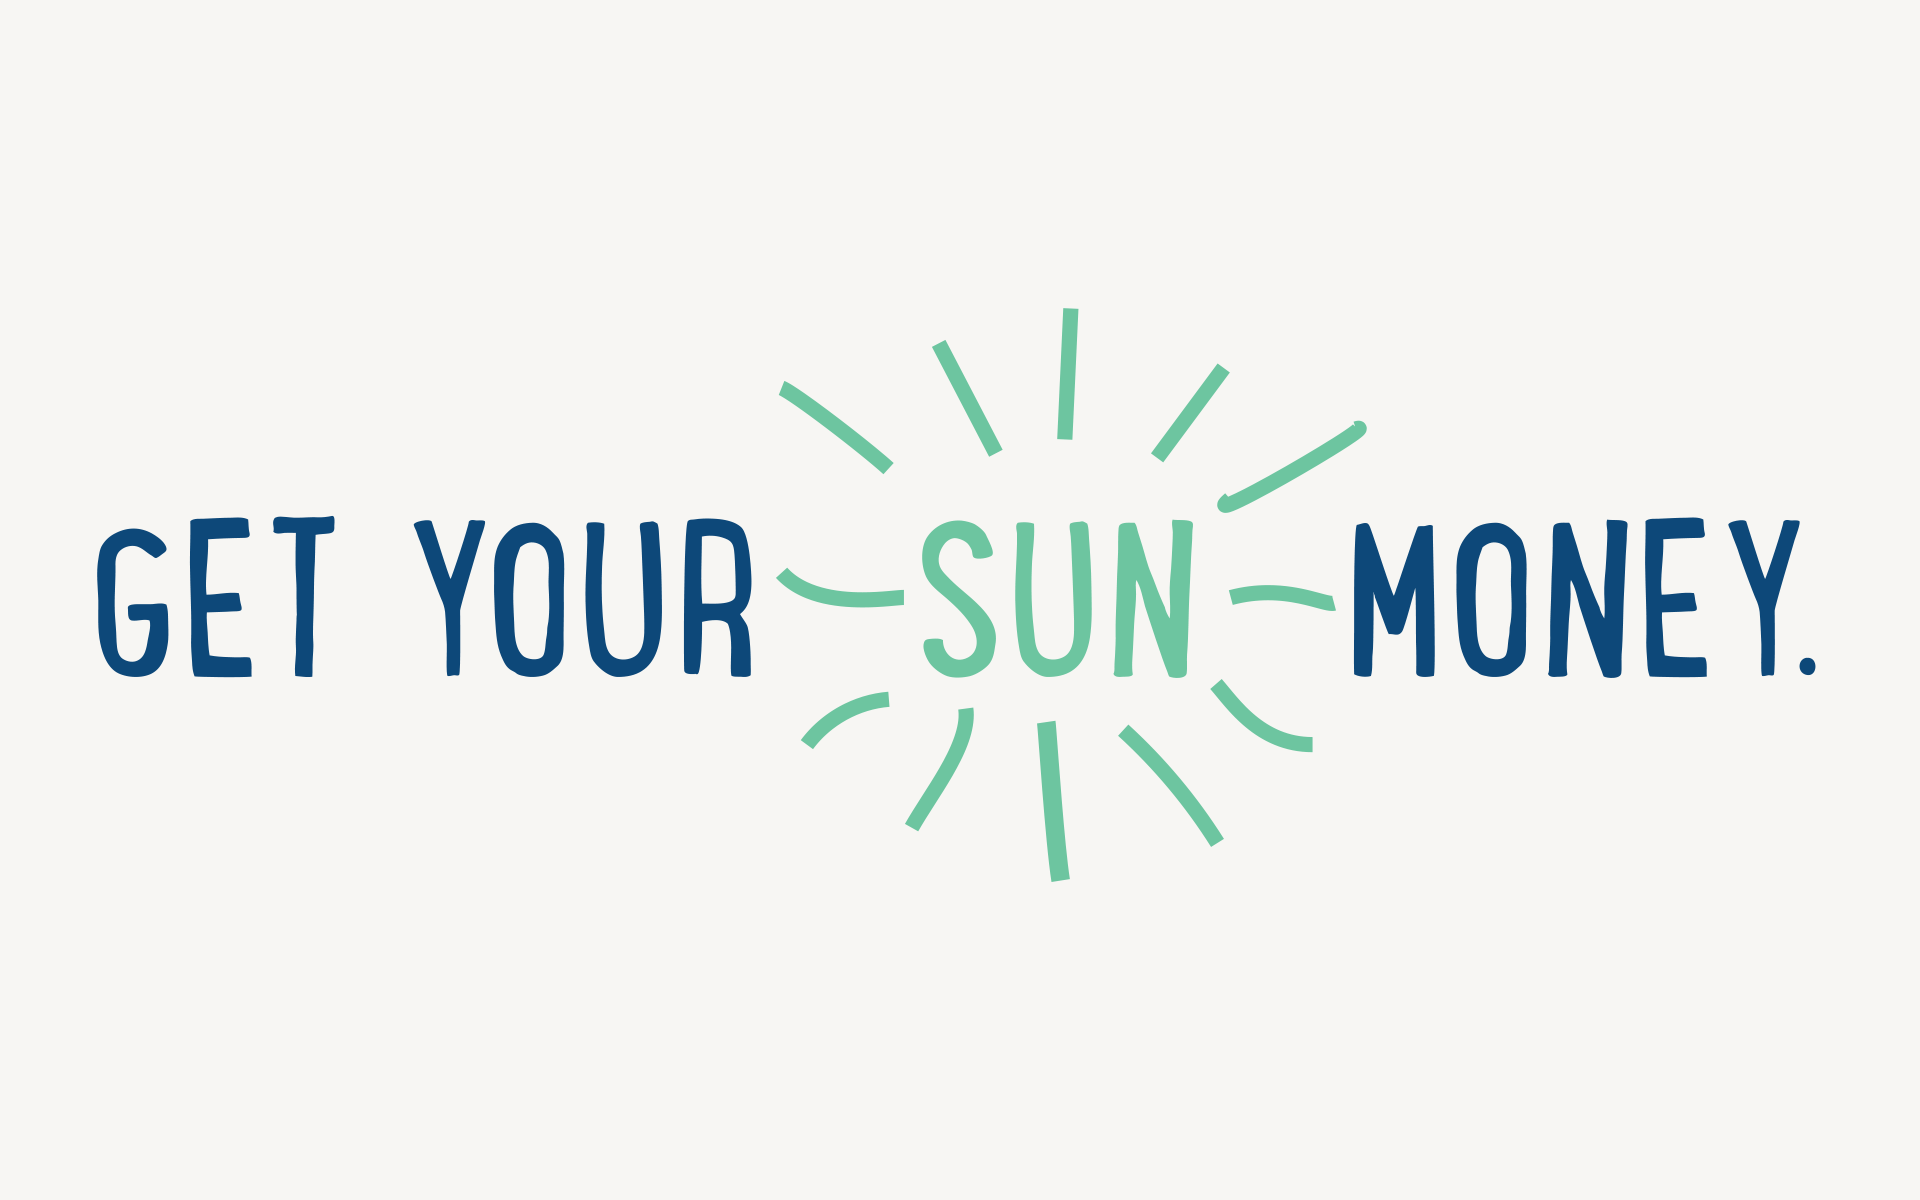 Get your sun money